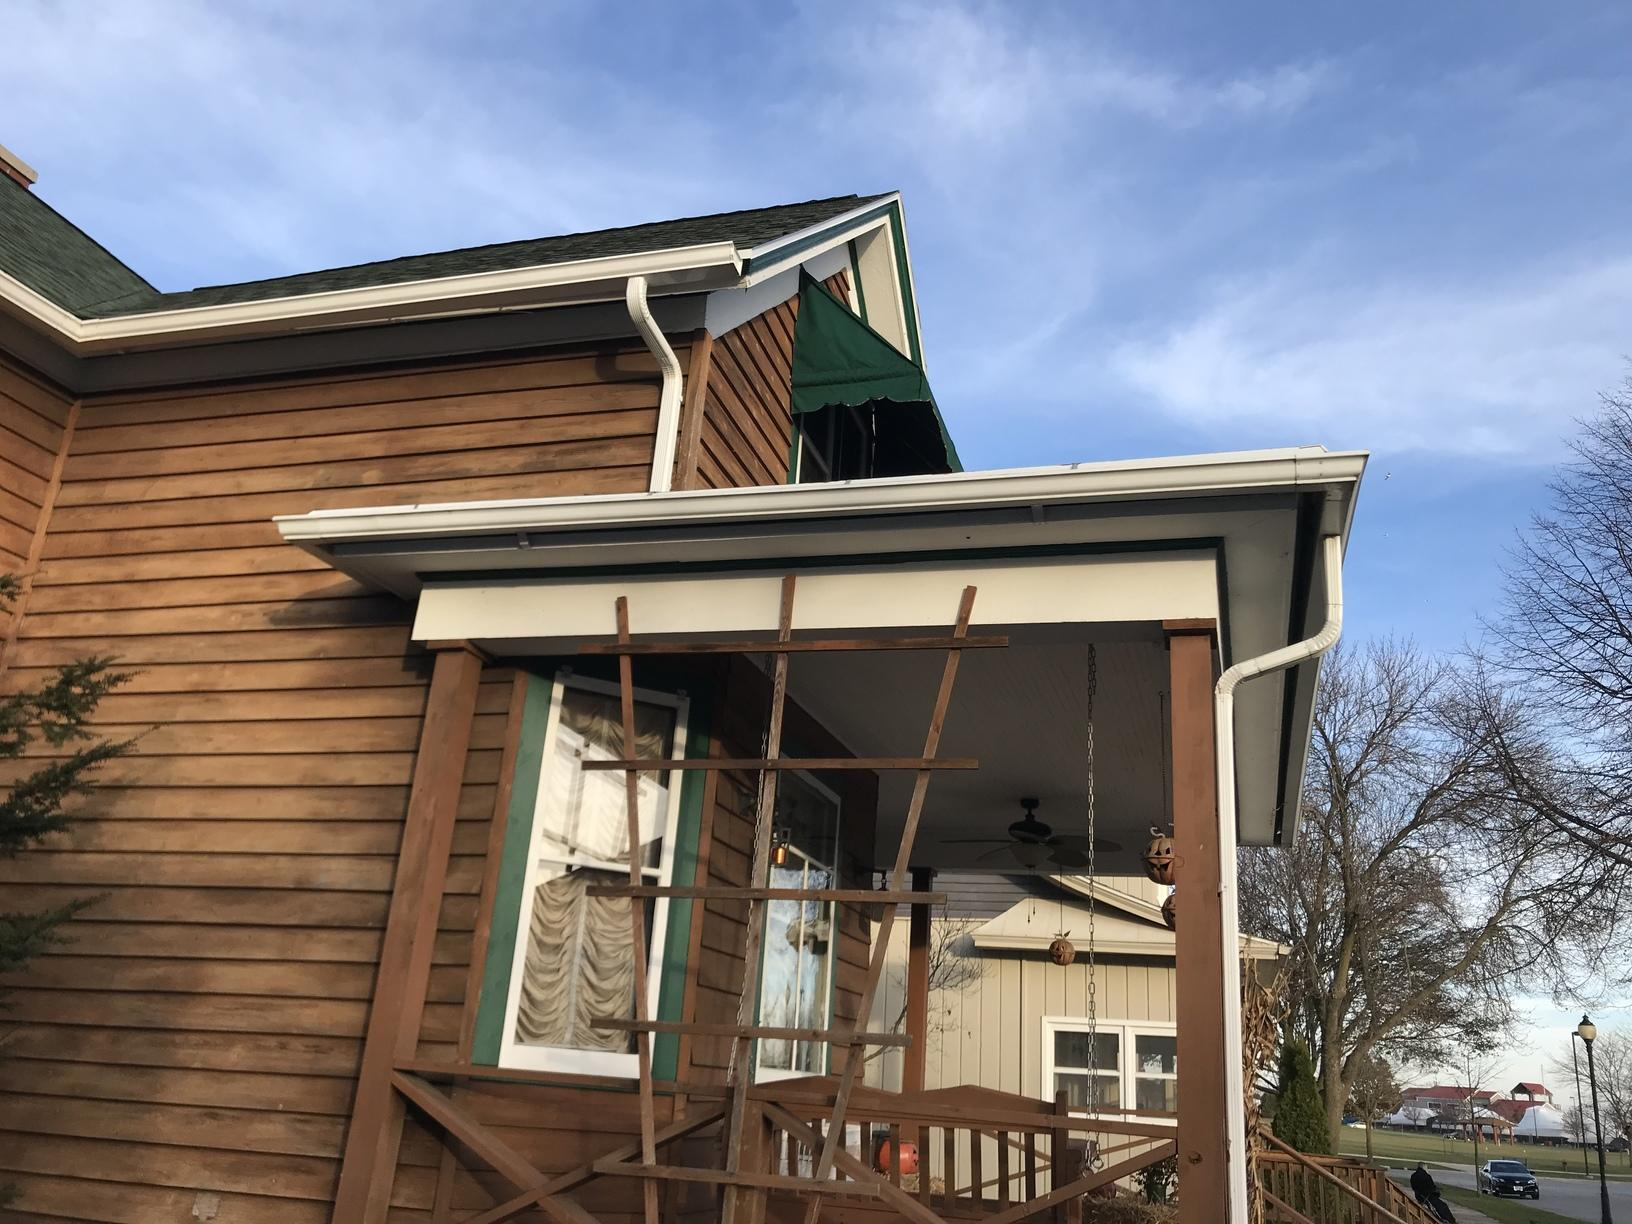 Dark Green LeafGuard Gutters Installed on a Home in Sheboygan, WI - Before Photo